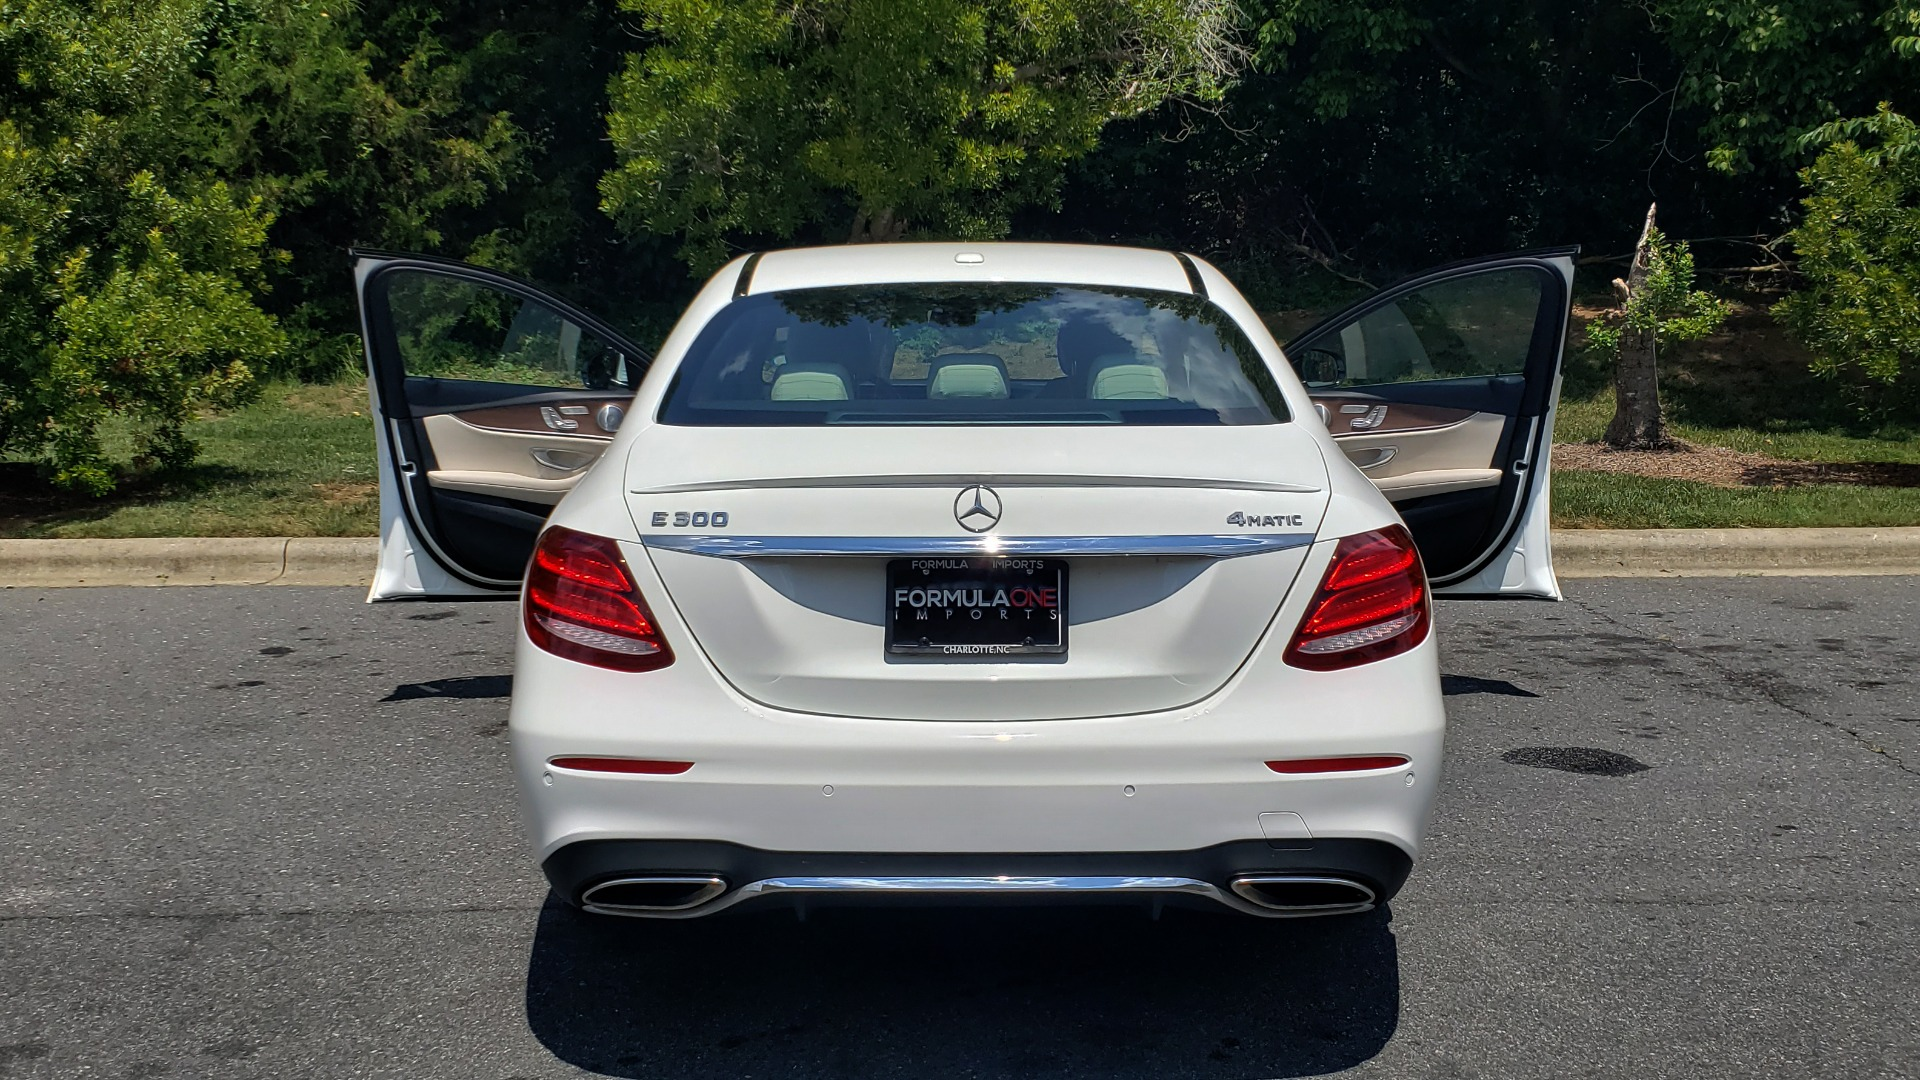 Used 2017 Mercedes-Benz E-CLASS E 300 PREMIUM / SPORT / NAV / SUNROOF / HTD STS / BSM / REARVIEW for sale $27,995 at Formula Imports in Charlotte NC 28227 24